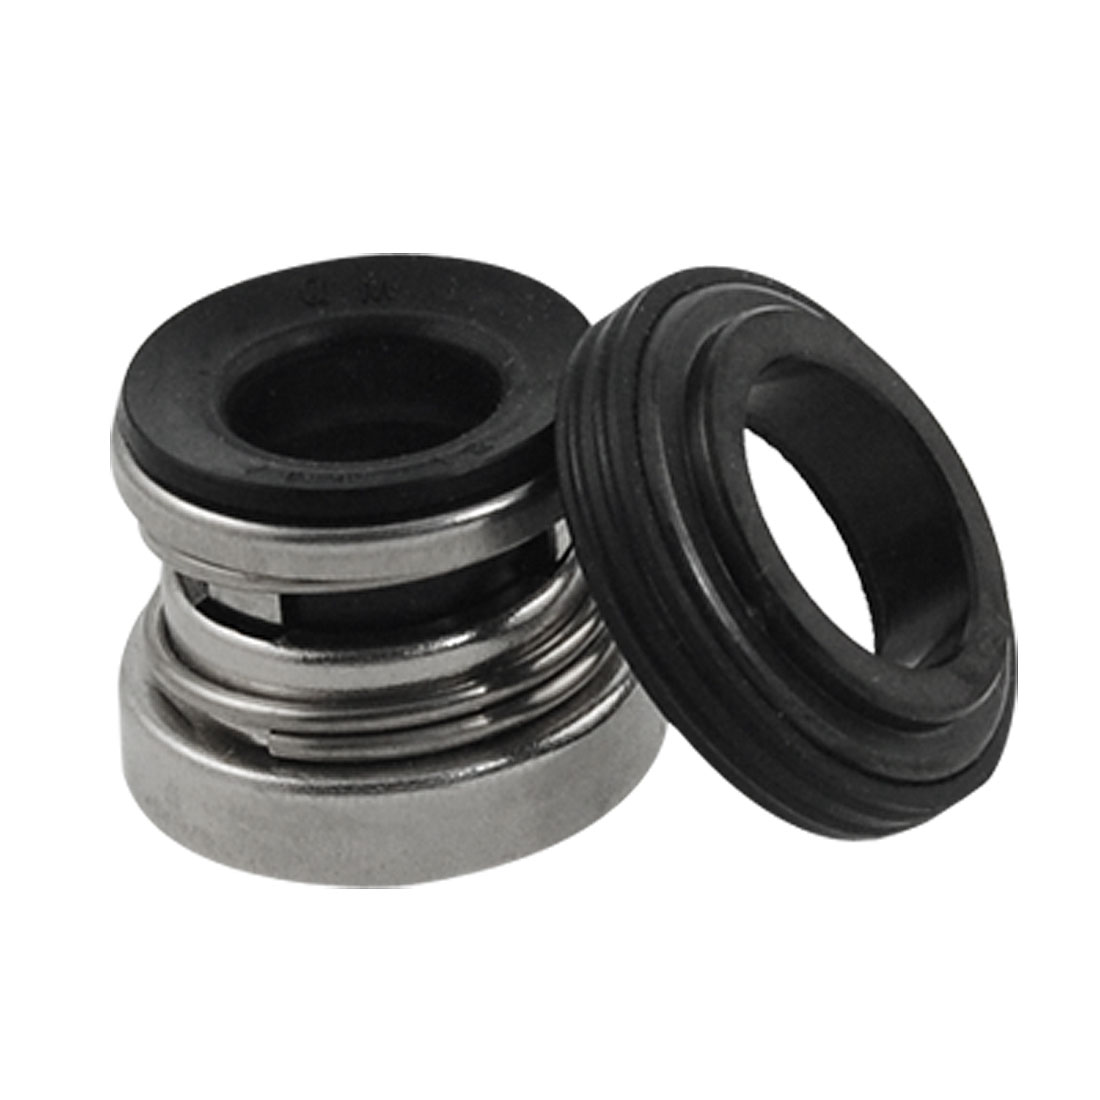 104-12 Single Spring Mechanical Shaft Seal 12mm for Pump